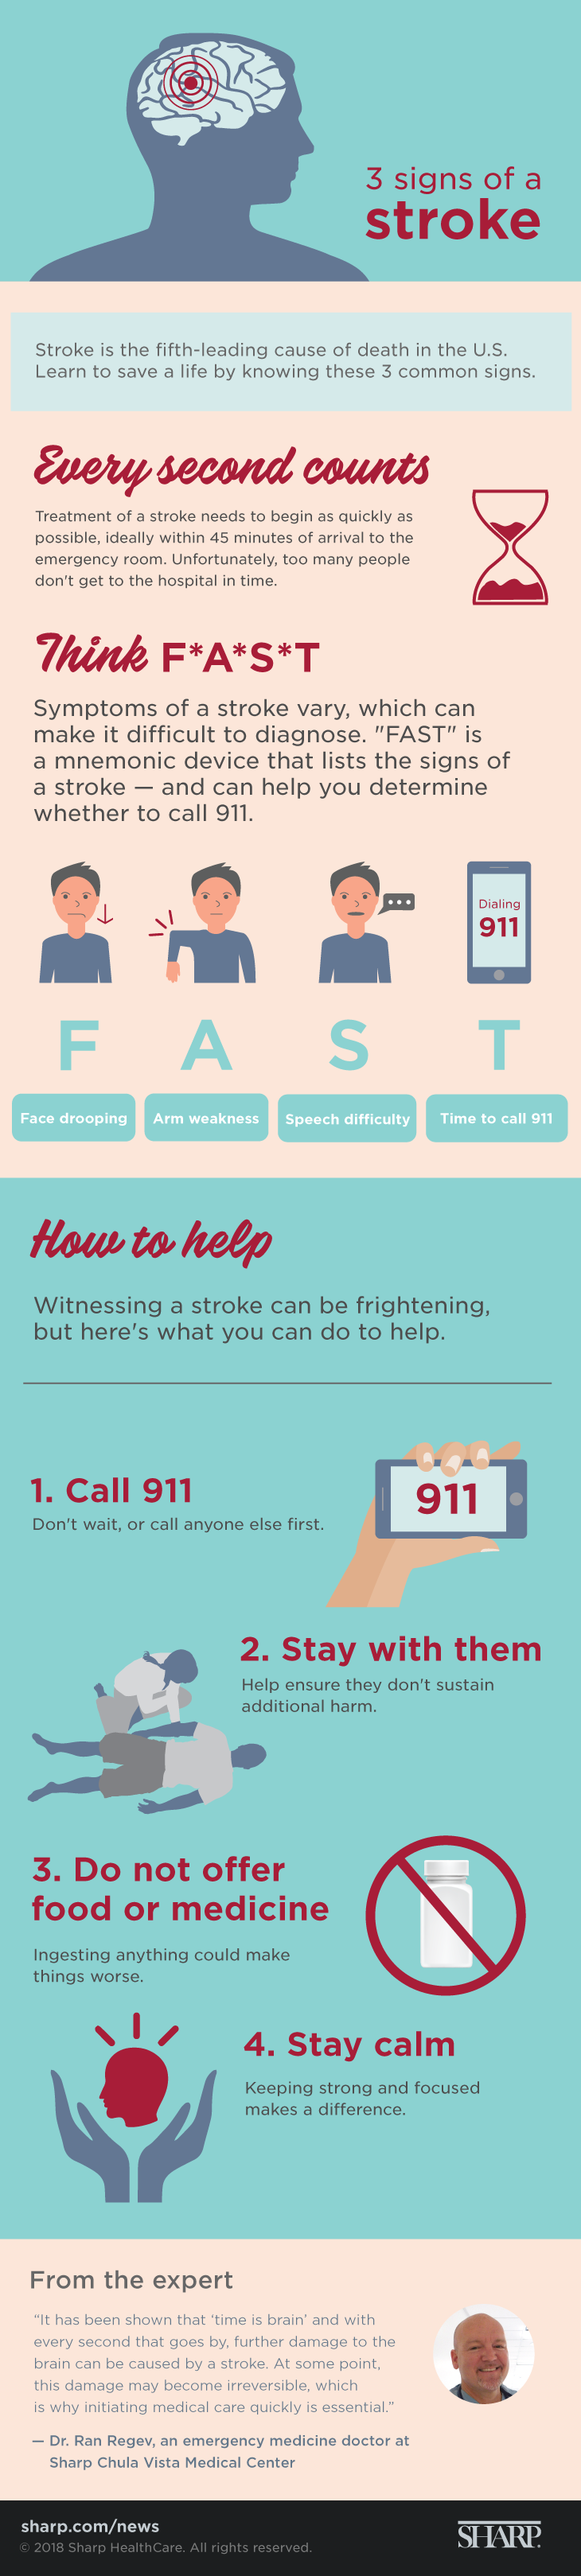 These are signs of a stroke infographic V2